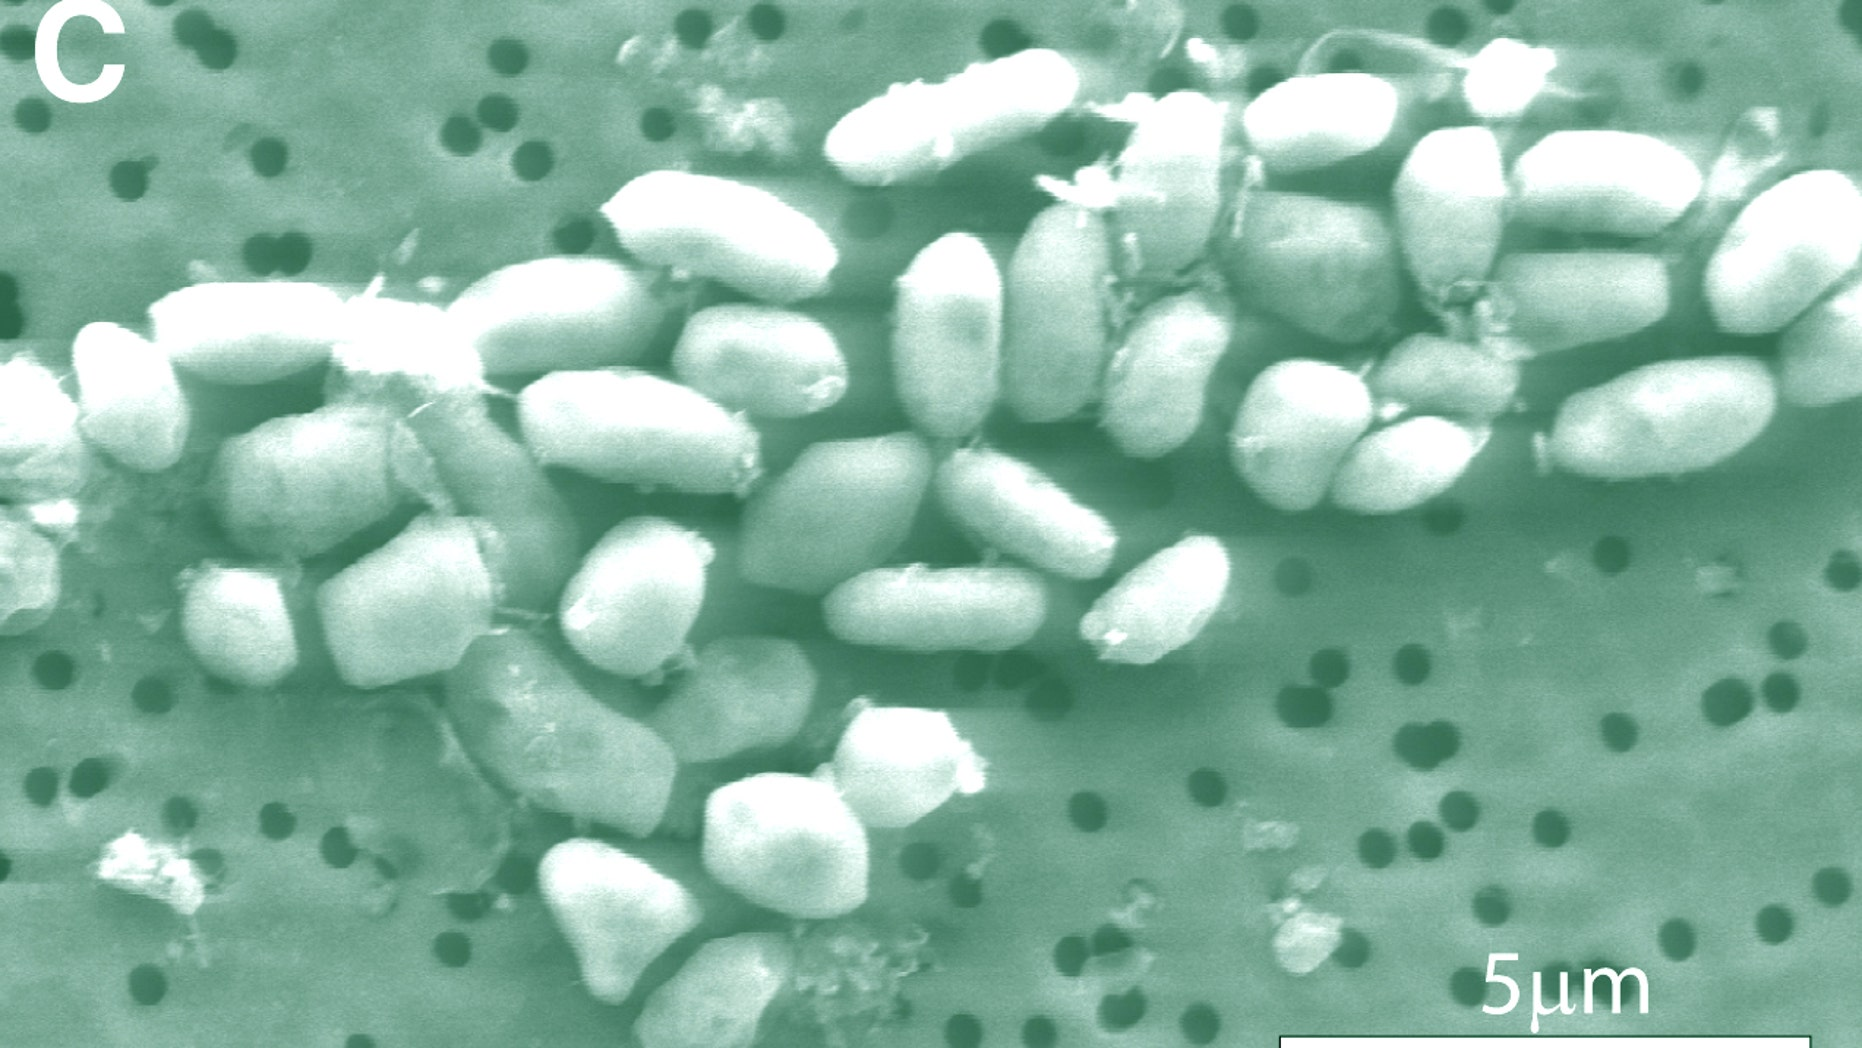 A scanning-electron micrograph image of arsenic-eating bacteria, which NASA says has redefined the quest for life in the universe.